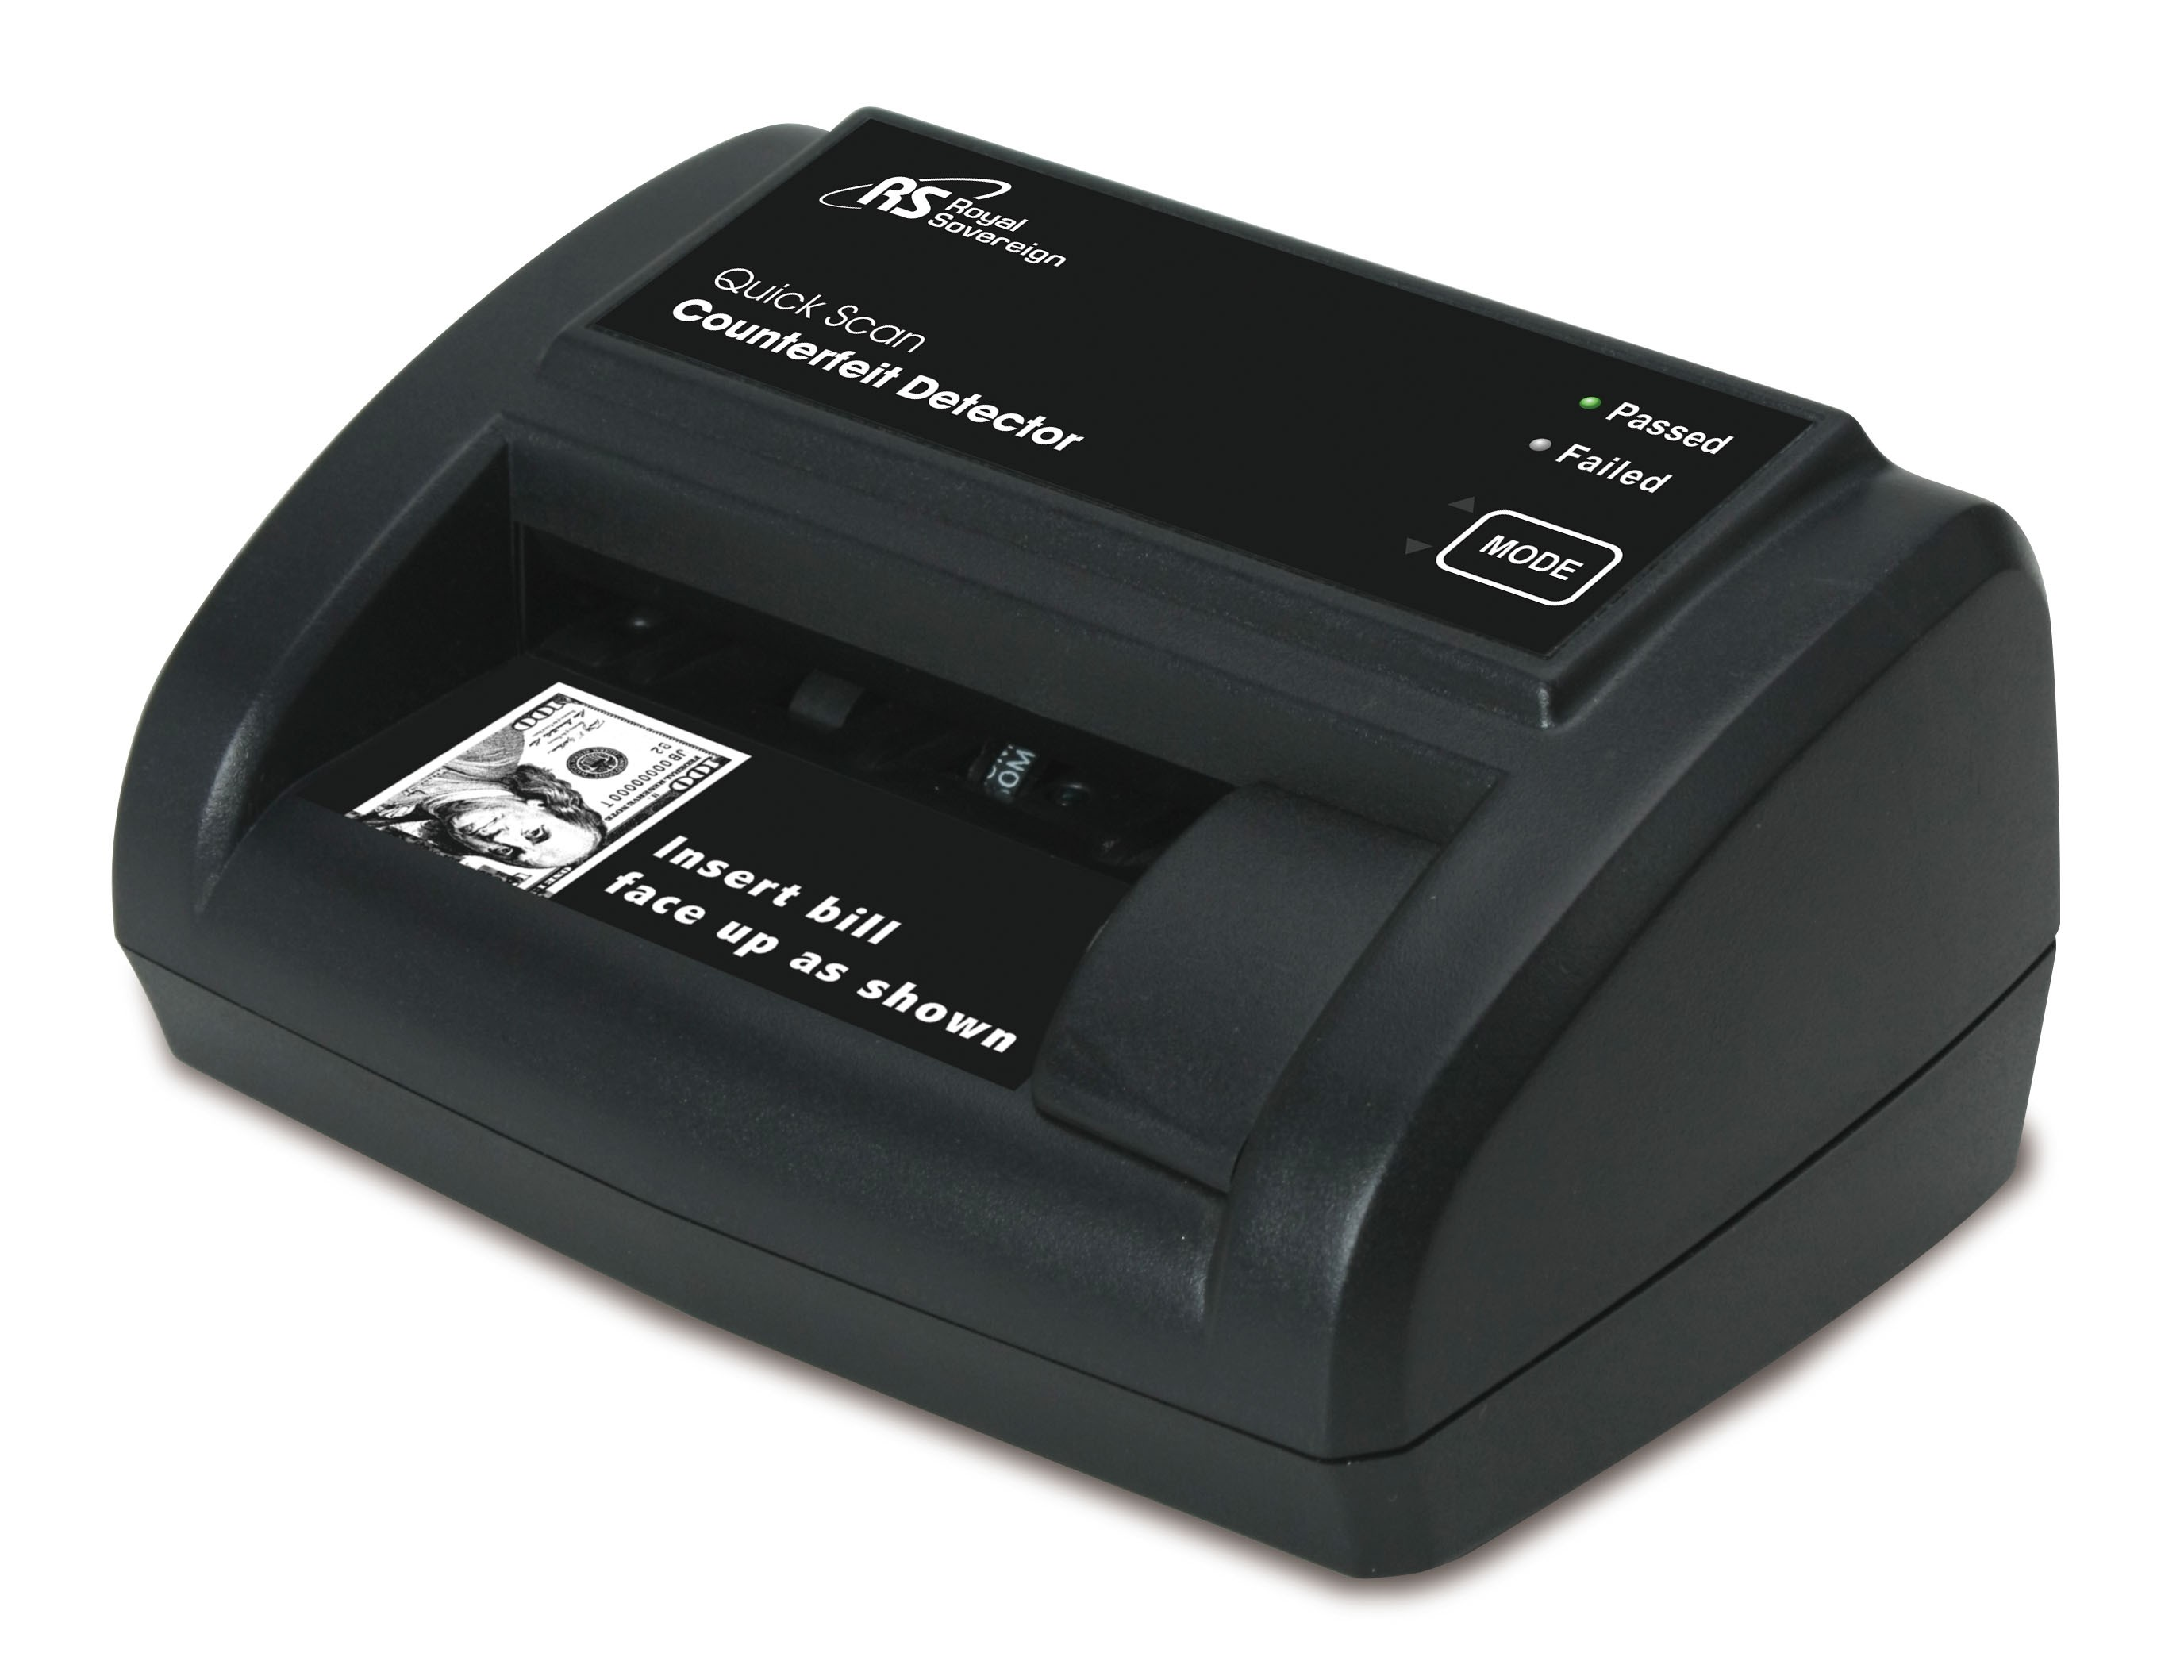 Royal Sovereign Quick Scan Counterfeit Detector, Supports New US